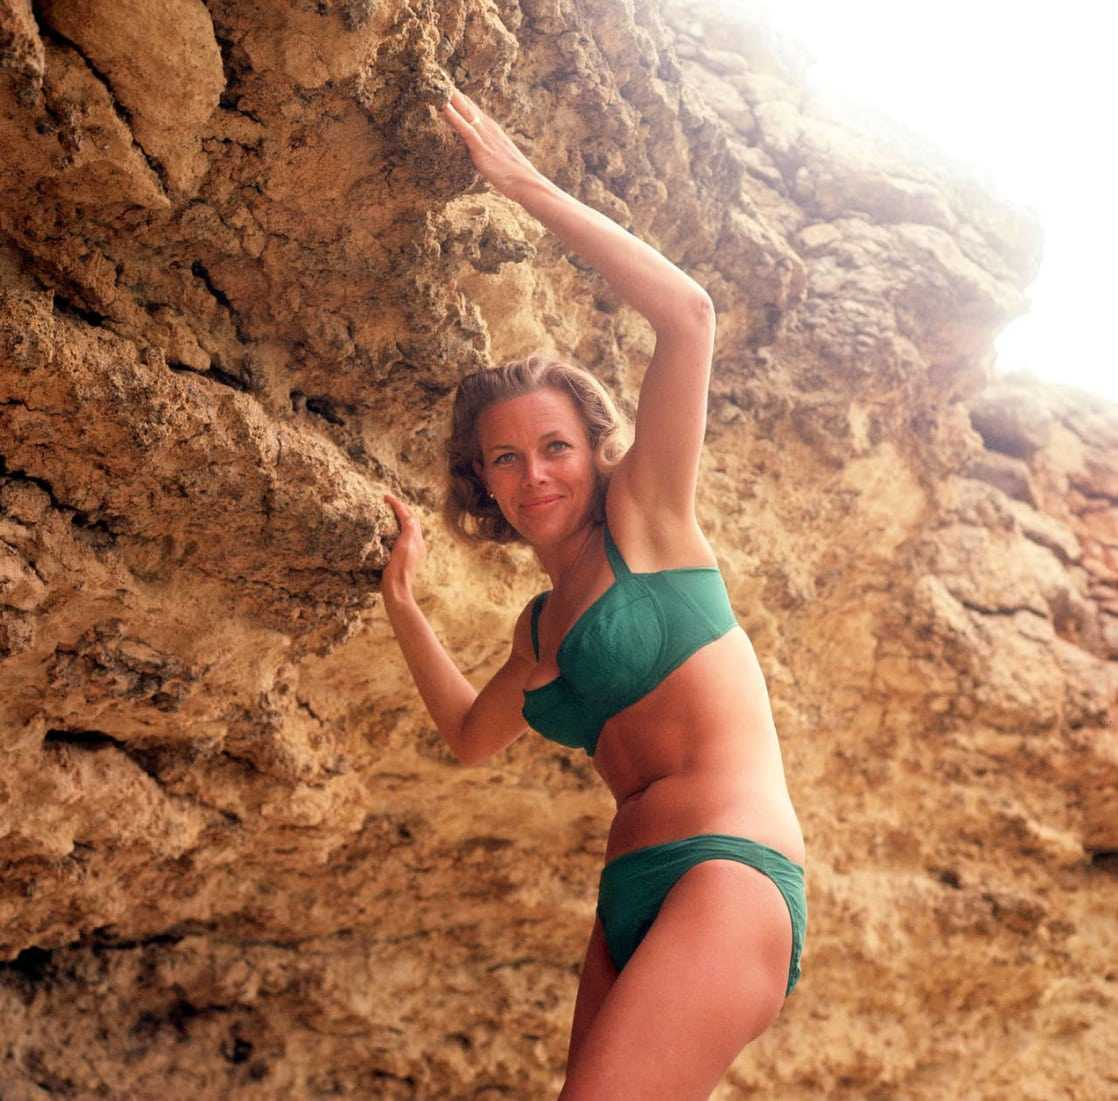 Honor Blackman hot pictures (2)